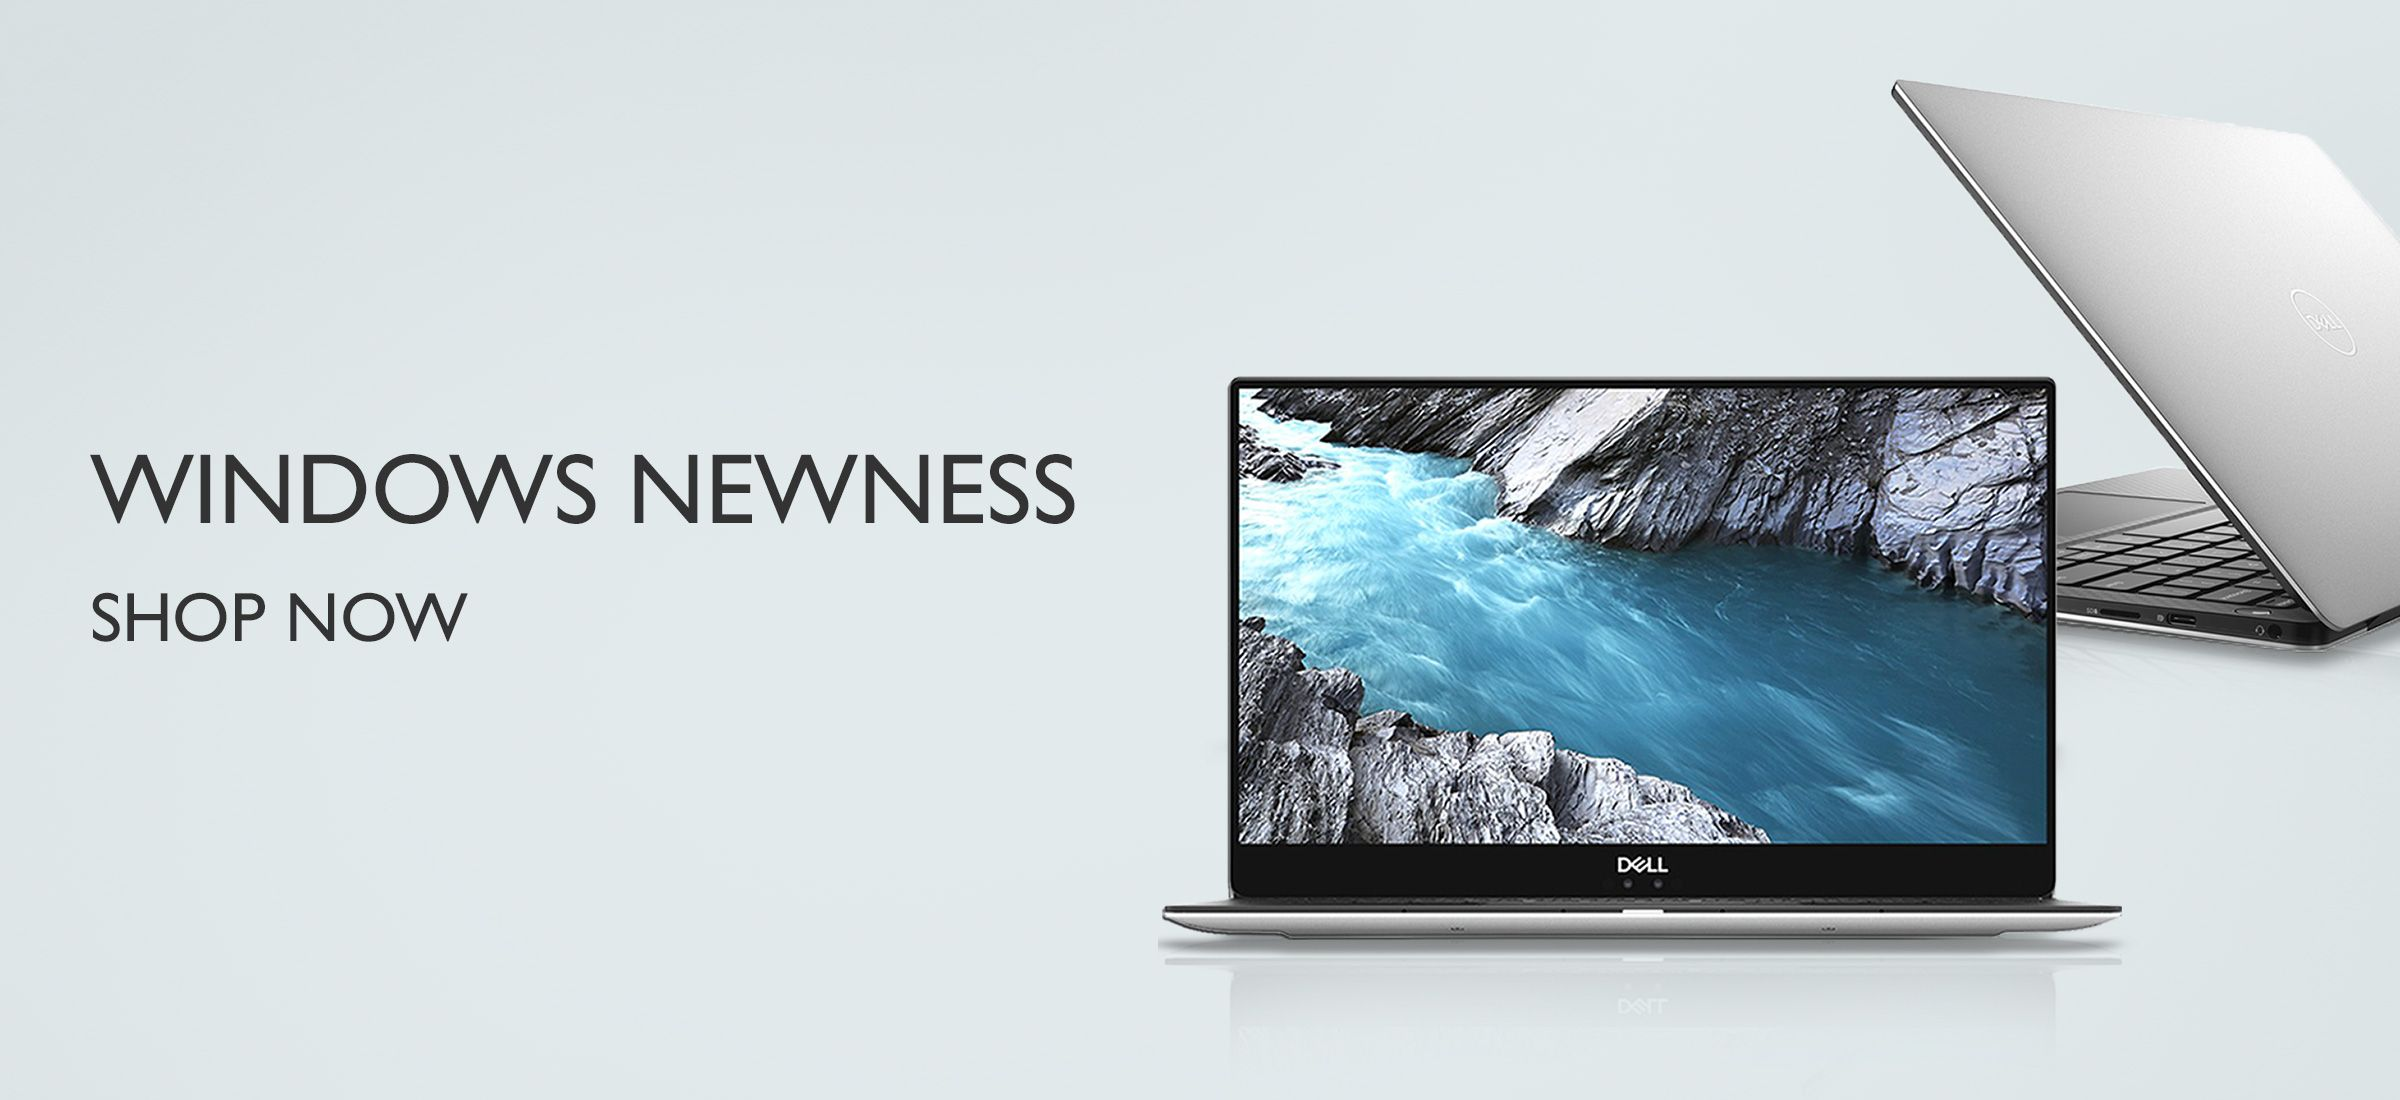 Windows Newness Laptops